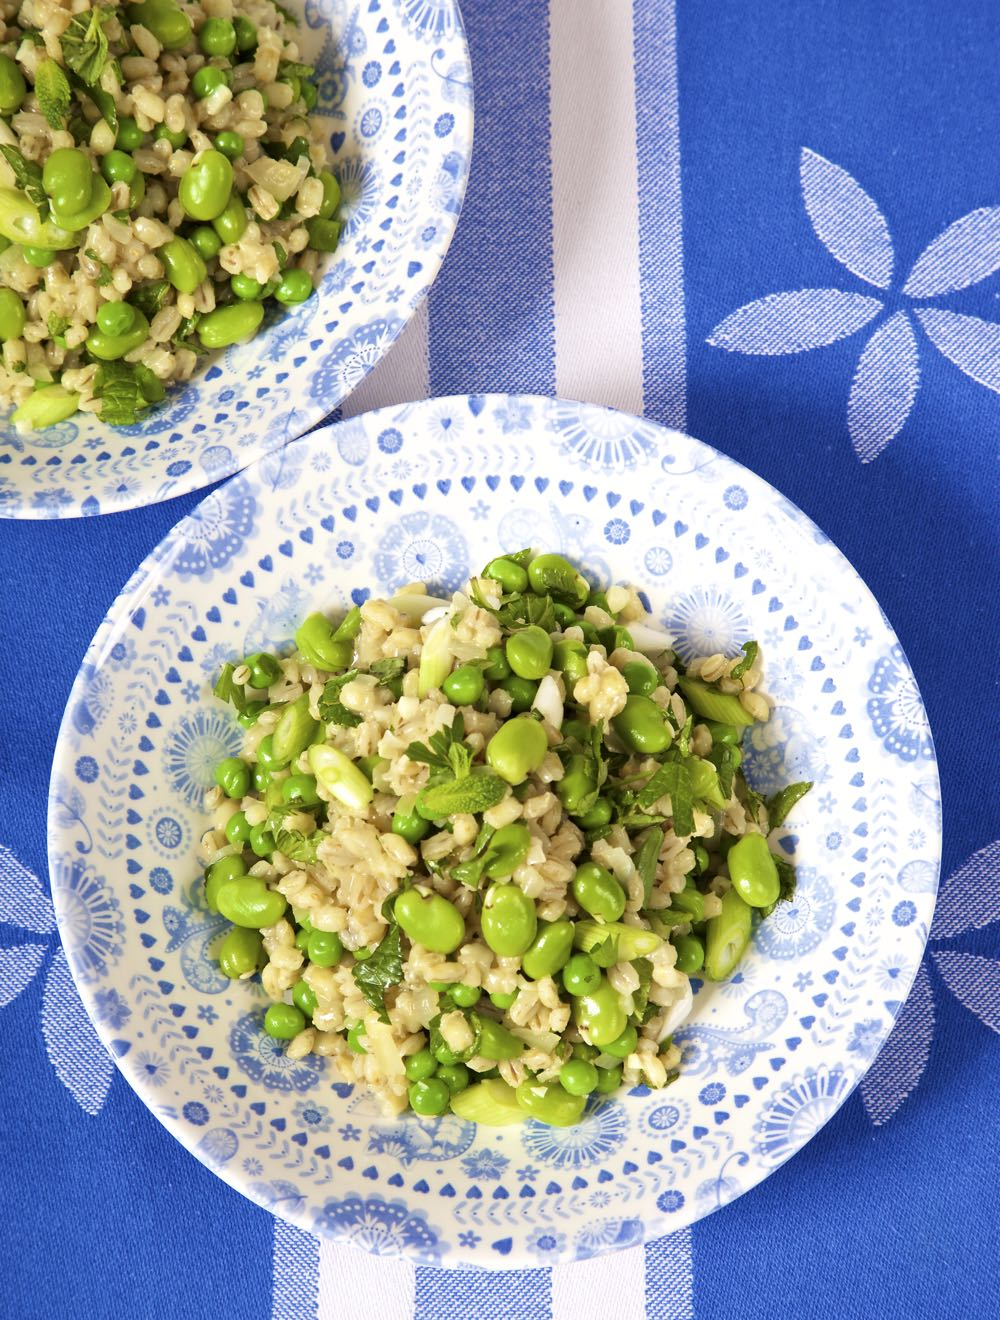 Barley Risotto with Broad Beans and Peas. Simple, tasty and satisfying vegan food making the most of spring vegetables in season.